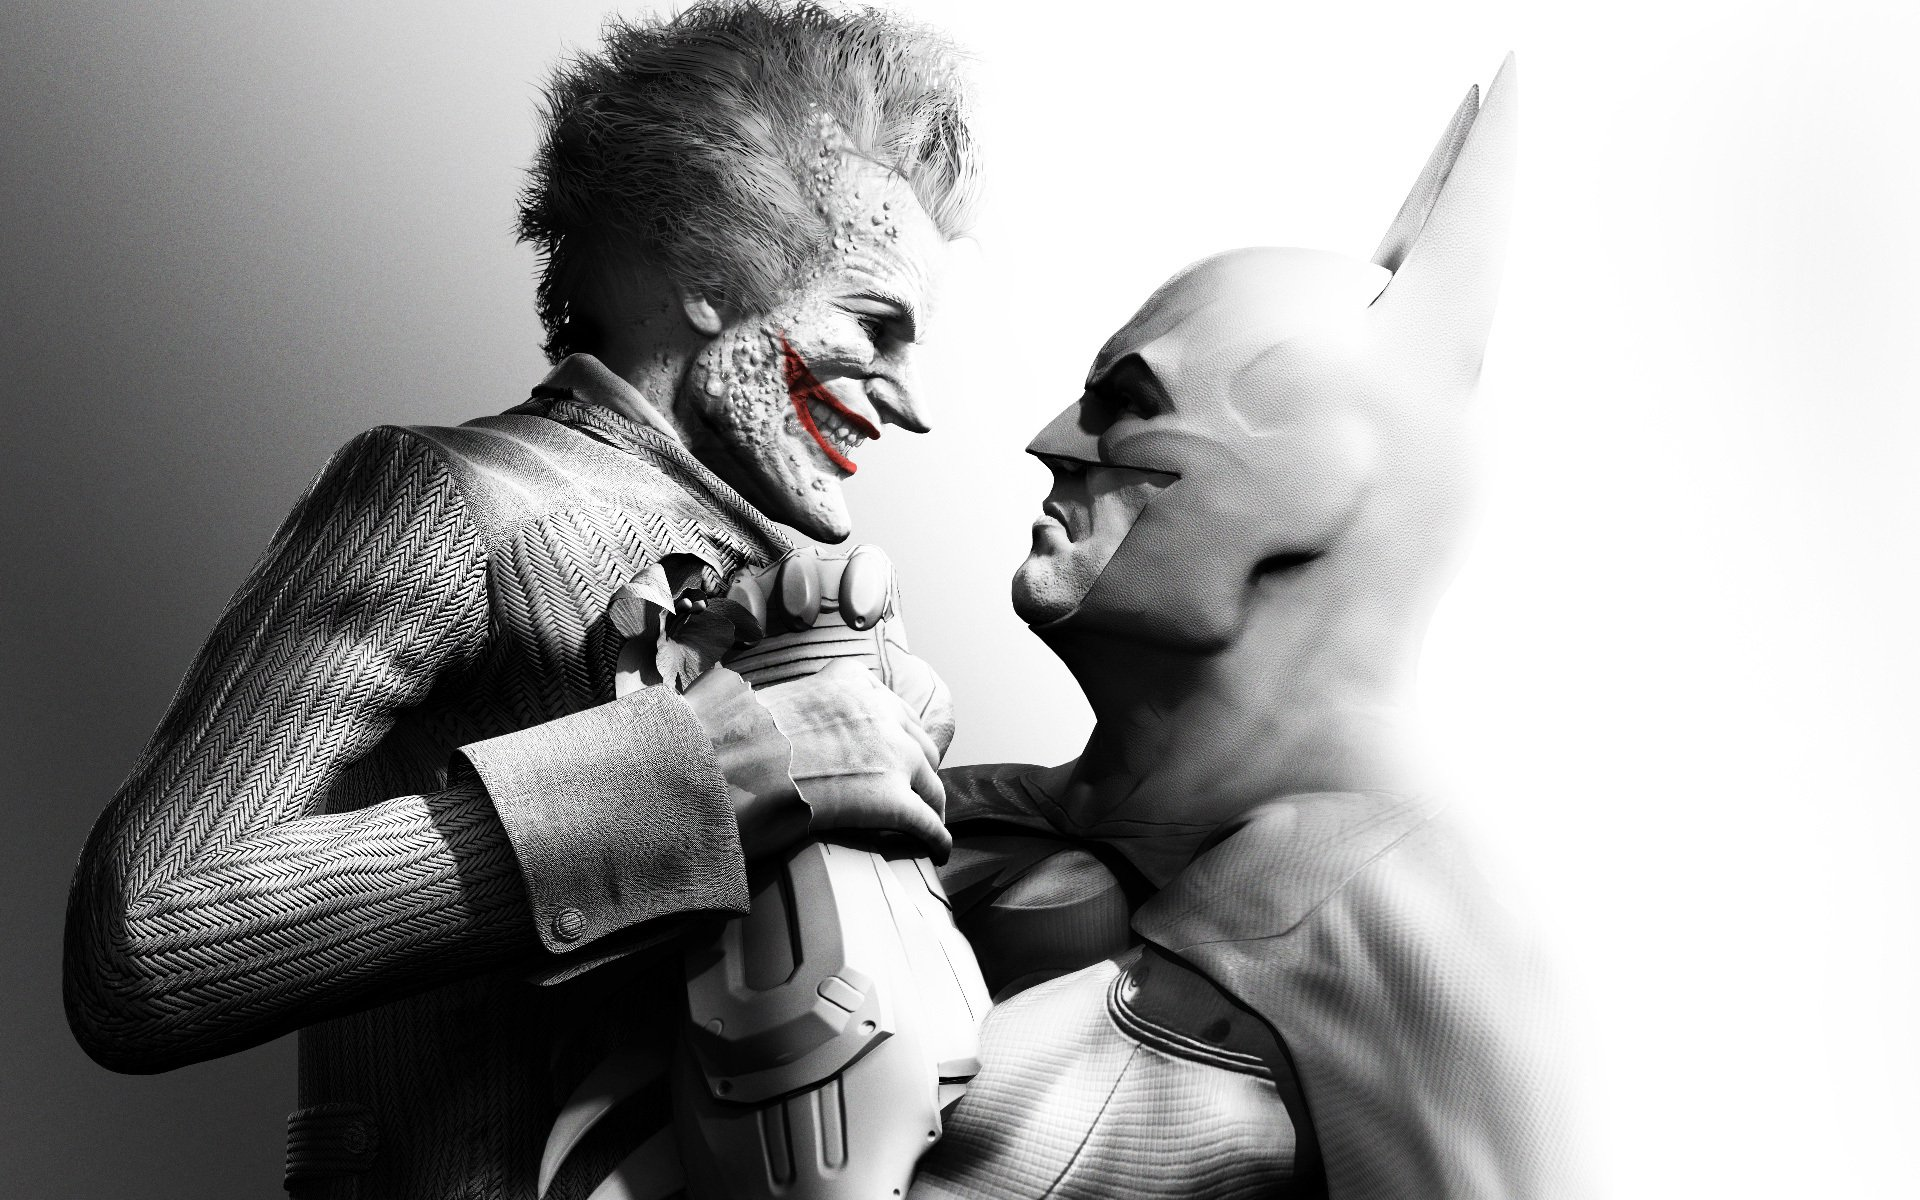 джокер, batman, joker, batman arkham city